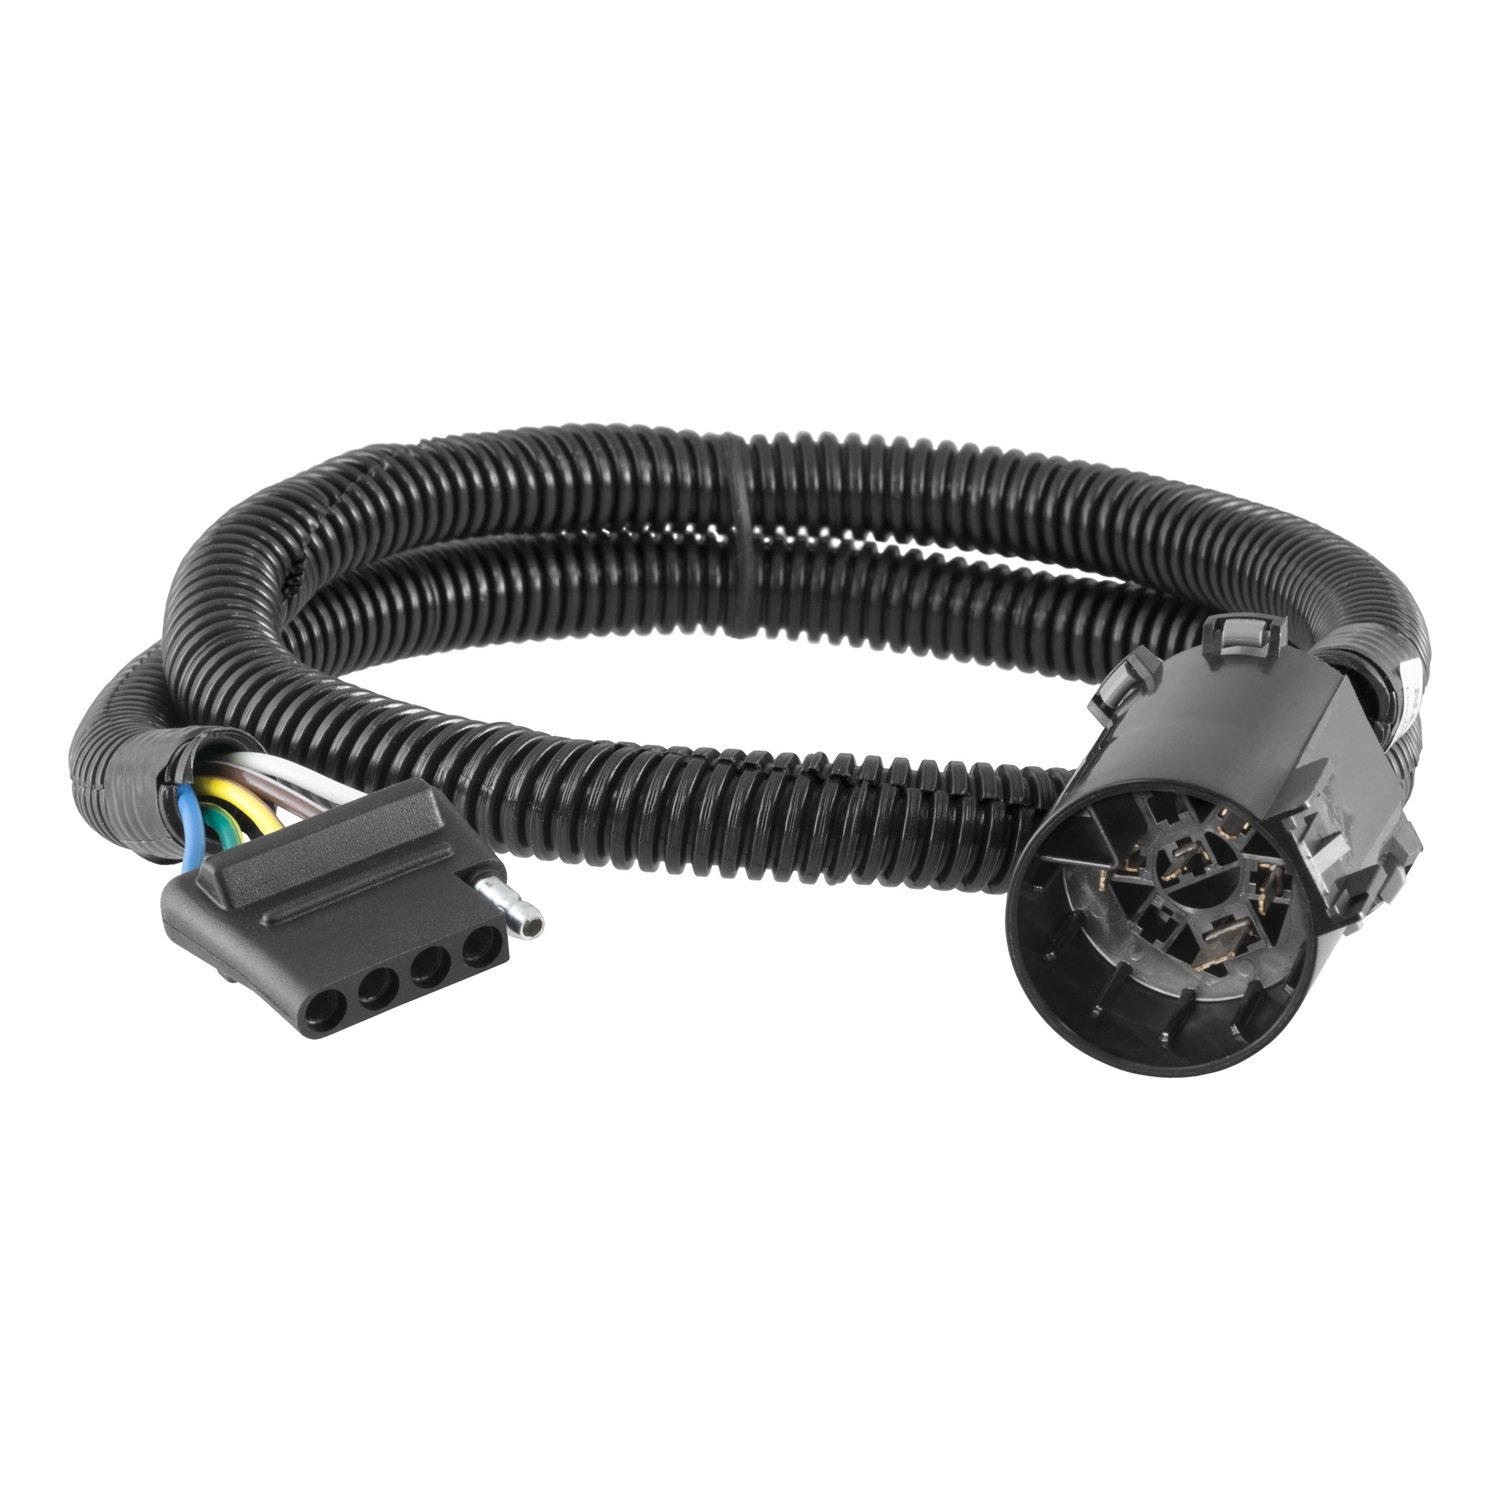 CURT 56515 Custom USCAR Vehicle Trailer Wiring Harness for Towing